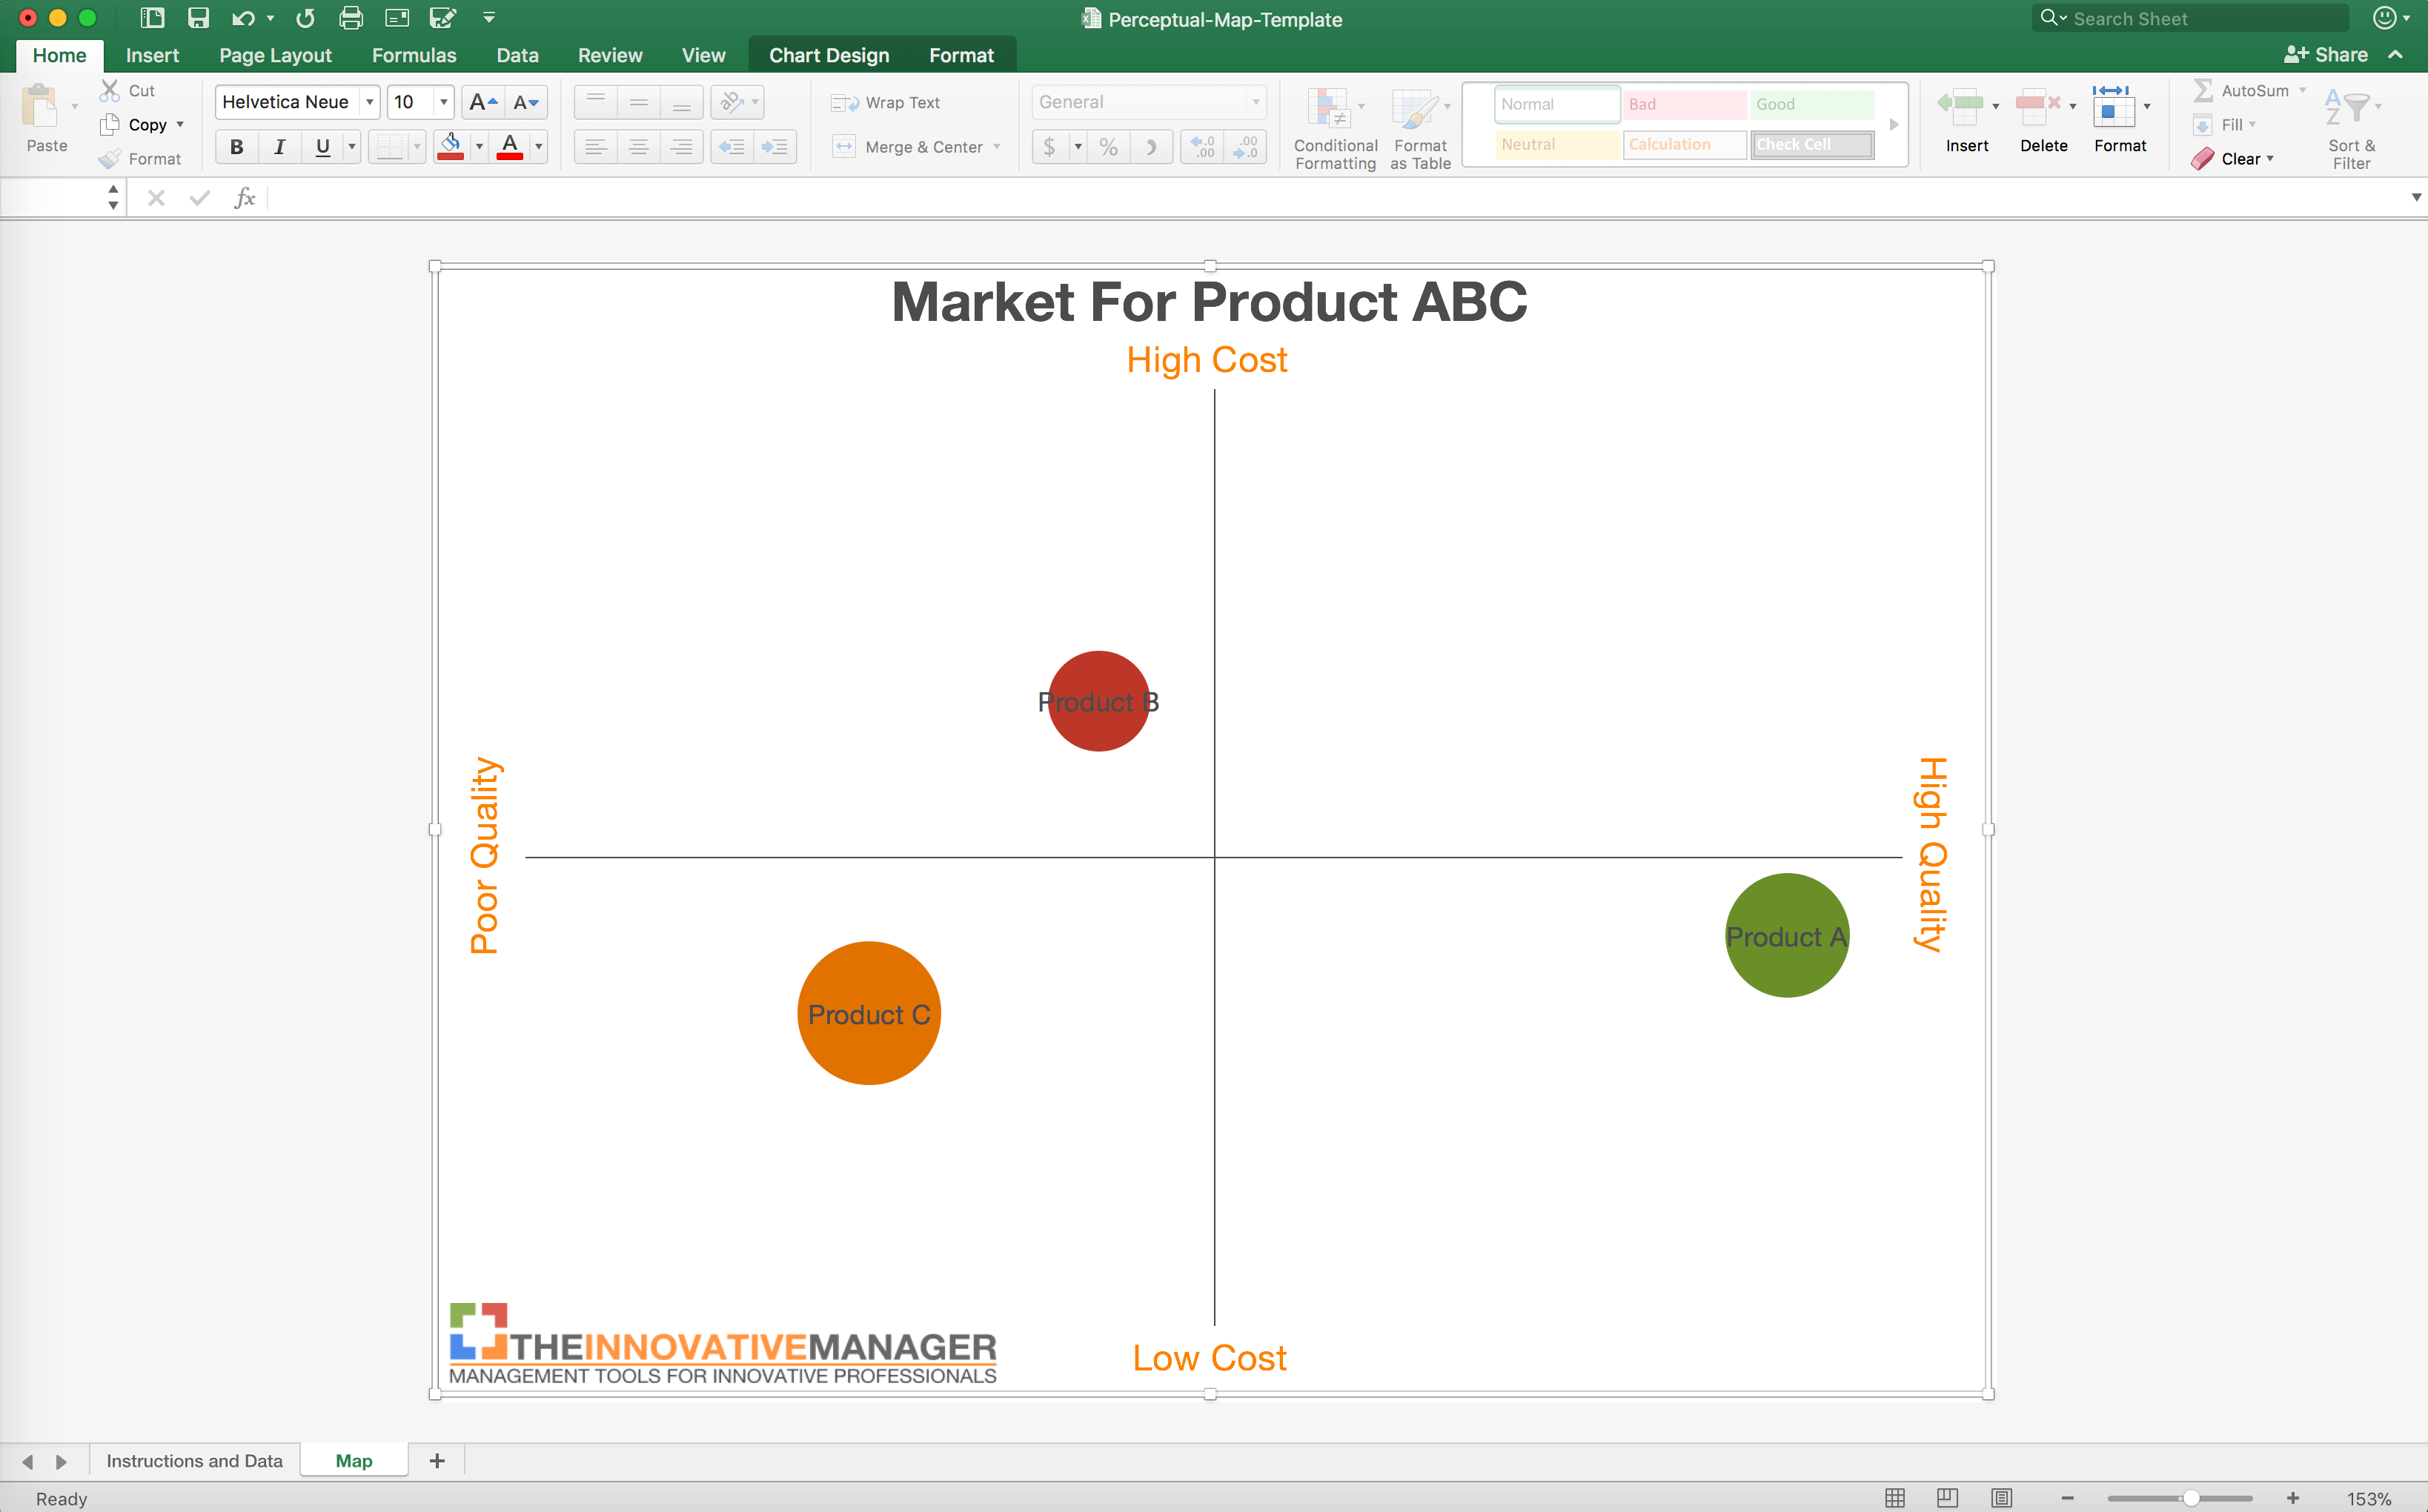 Free SWOT Analysis | Start Your Market Research Here